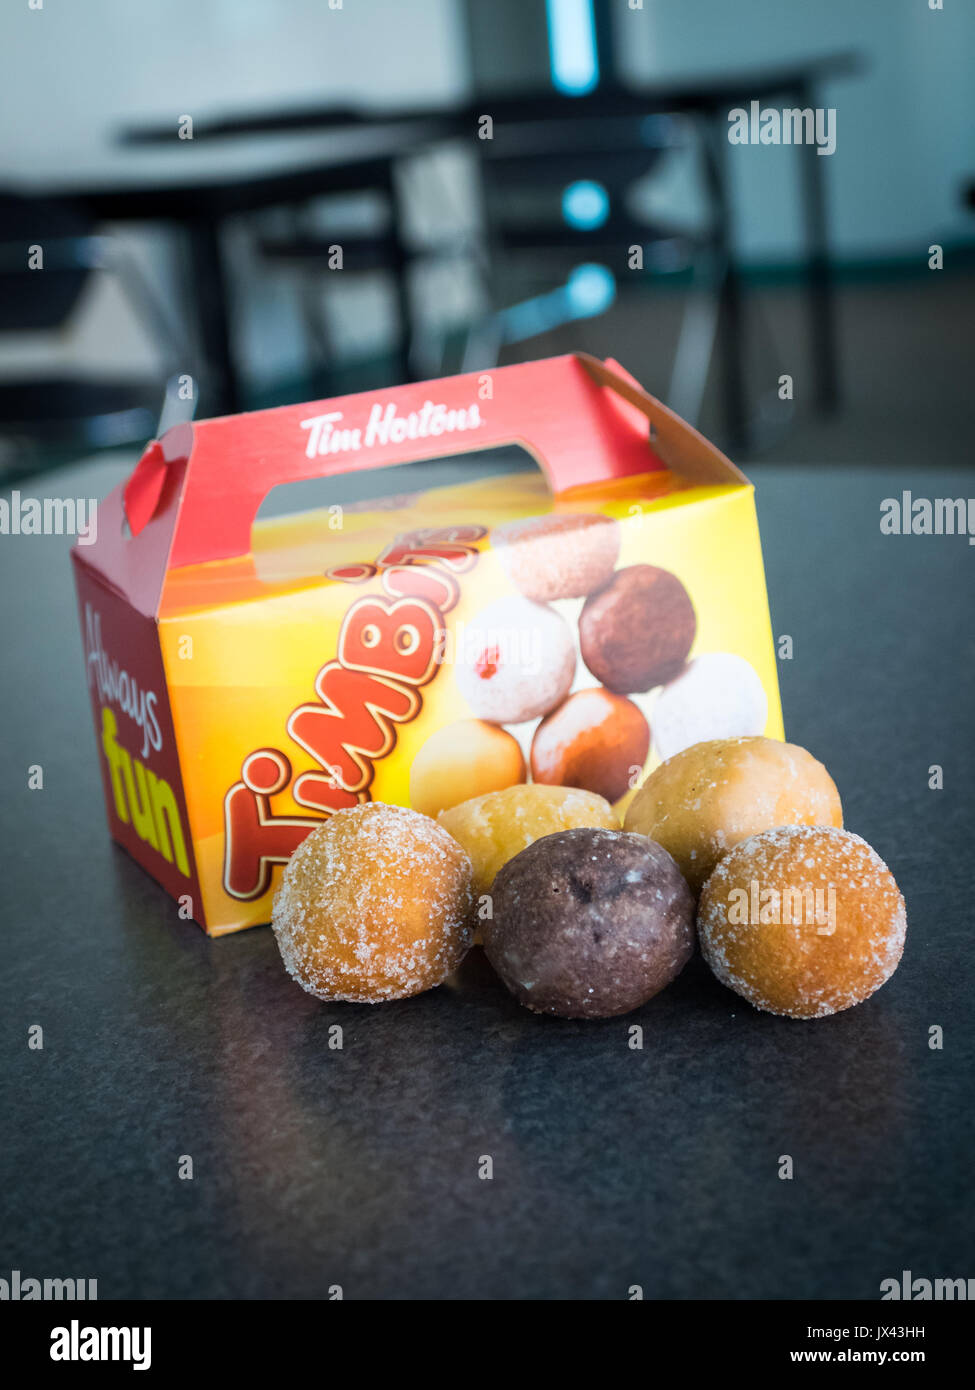 Timbits (donut holes, doughnut holes) from Tim Hortons, a popular Canadian fast food restaurant chain. - Stock Image